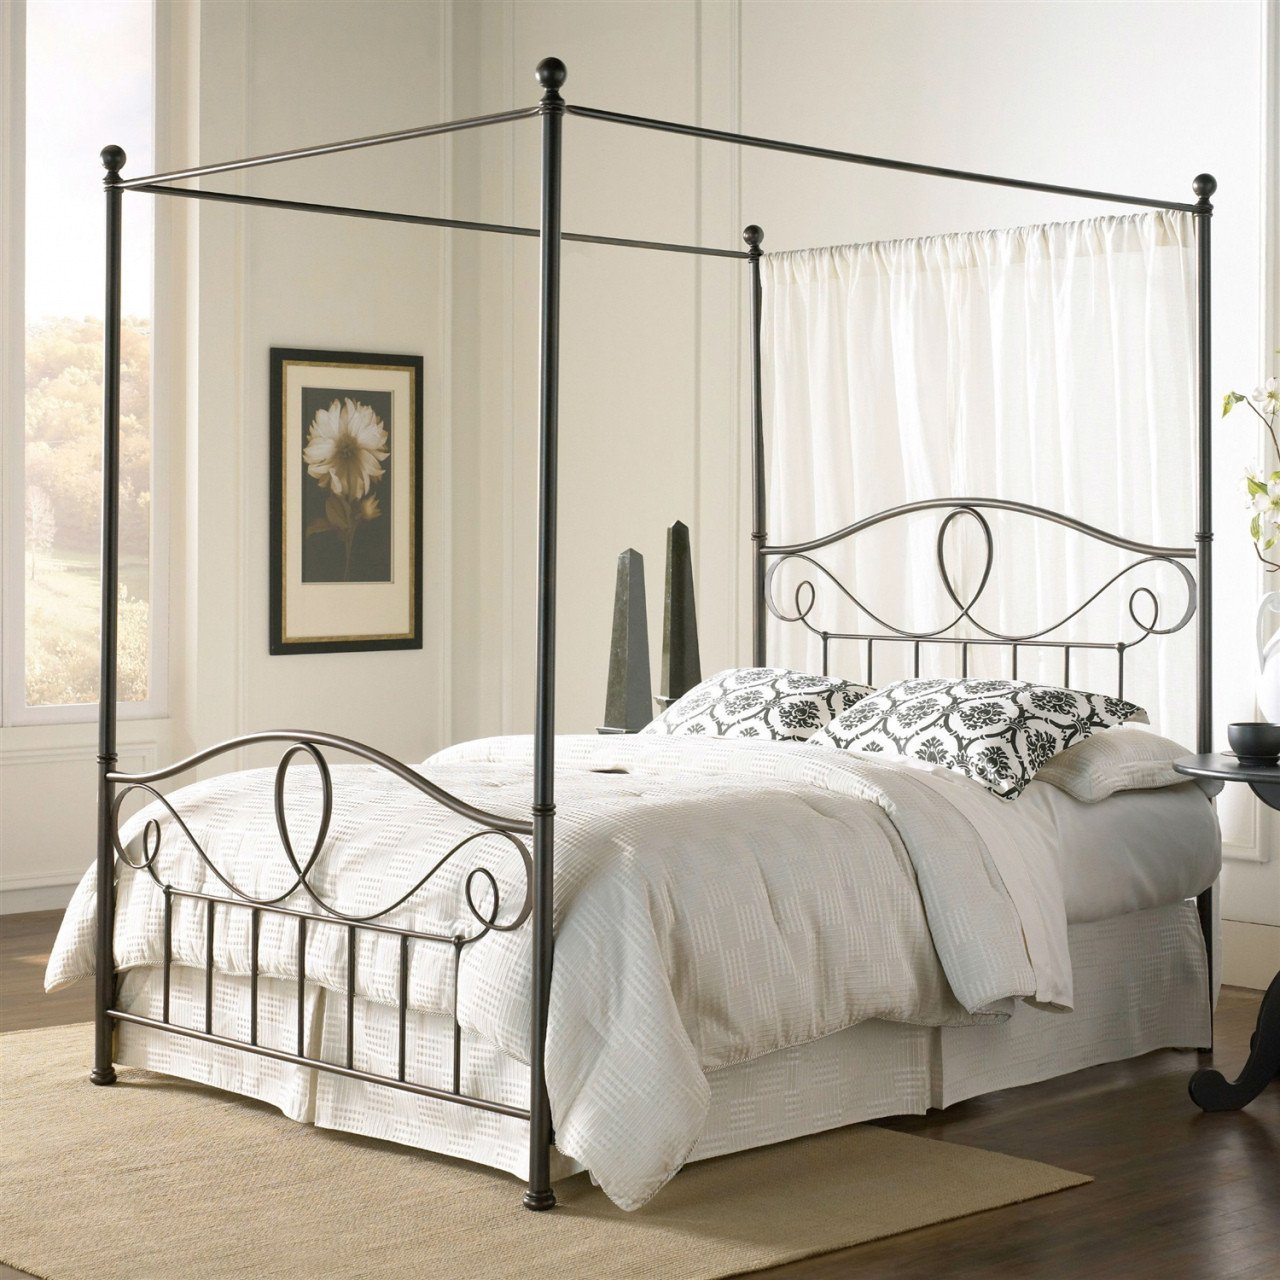 Queen Size Canopy Bedroom Set Lovely Iron Canopy Bed Frame — Procura Home Blog